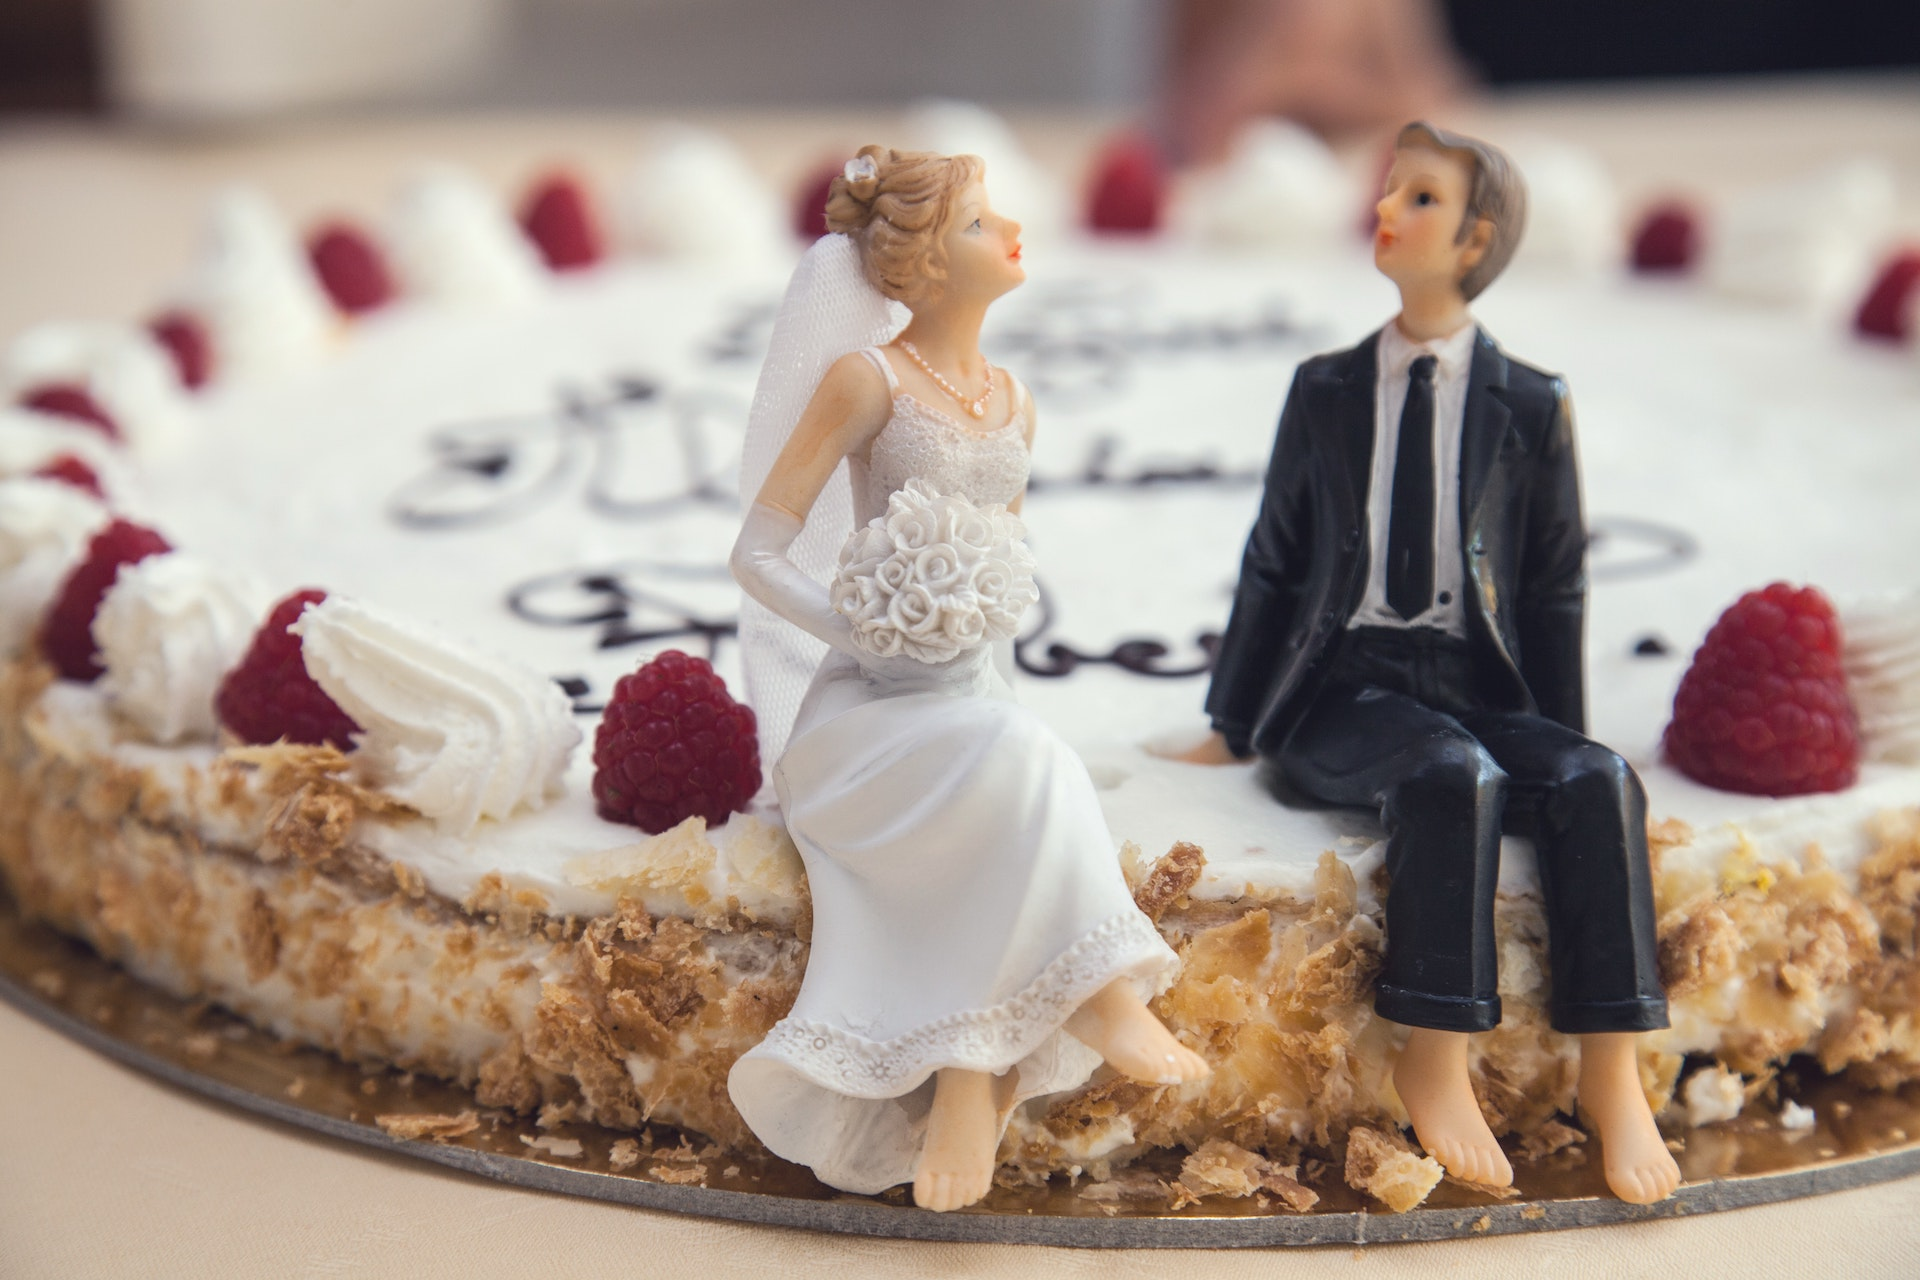 How to Plan a Wedding in 30 Days